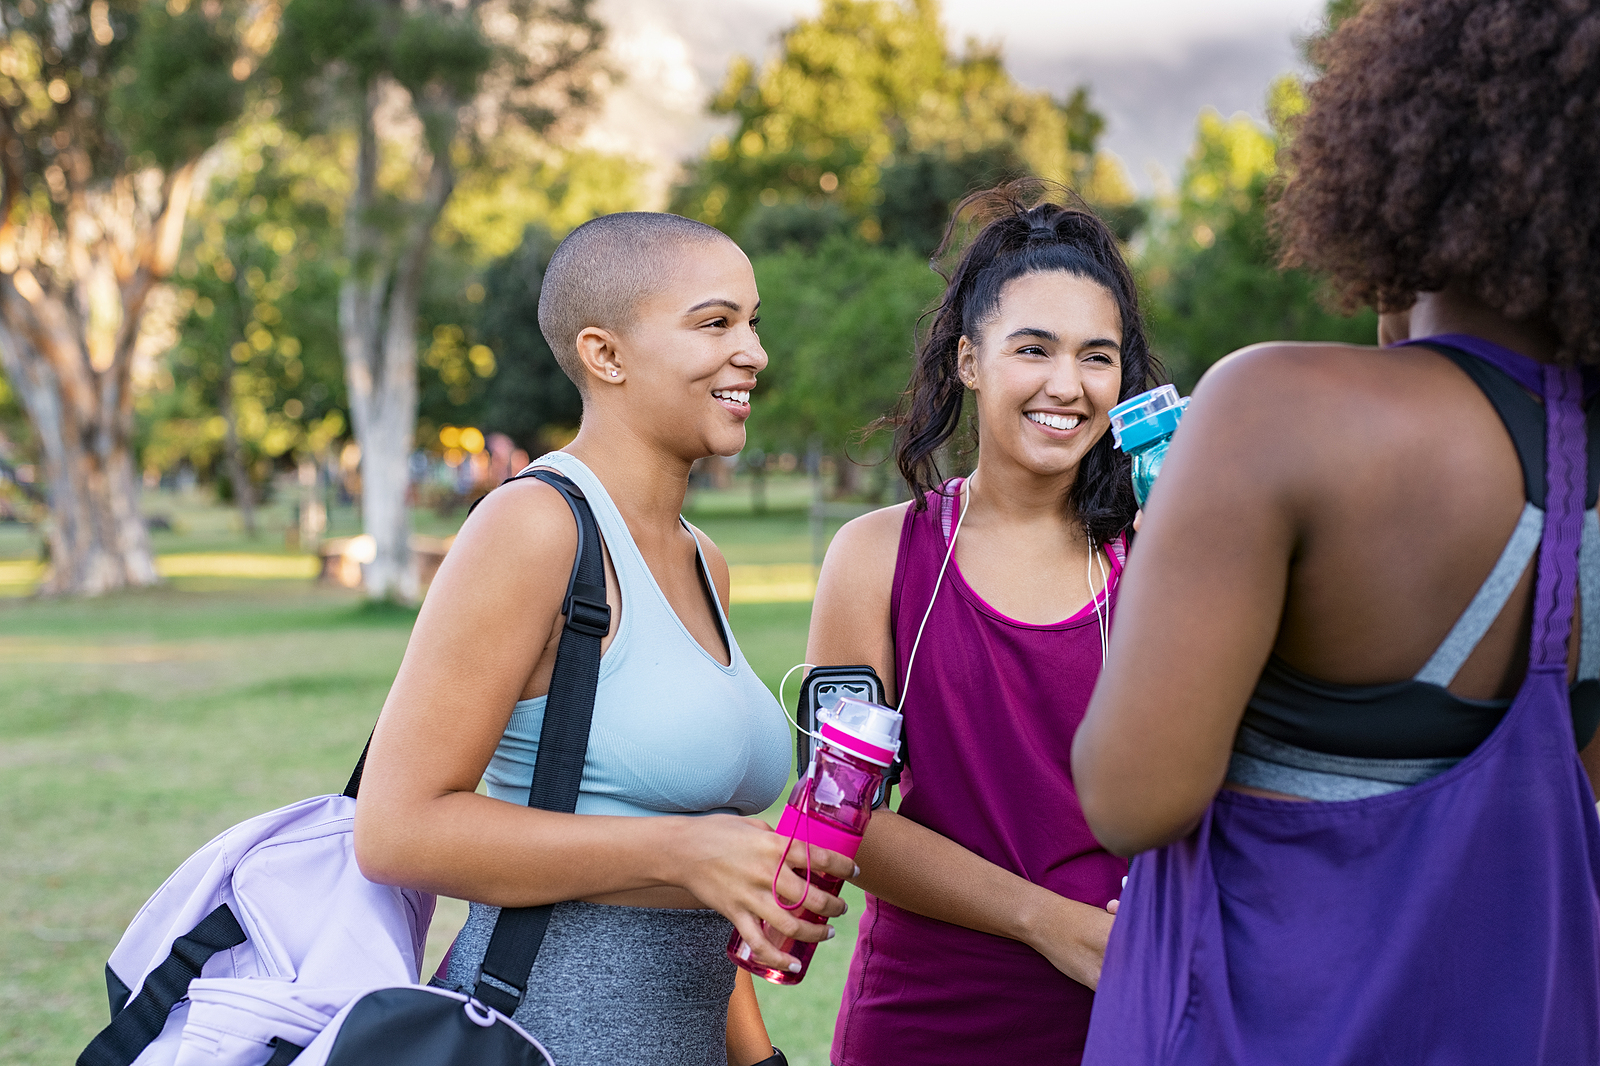 Group of multiethnic young women talking to each other after fitness exercising at park.